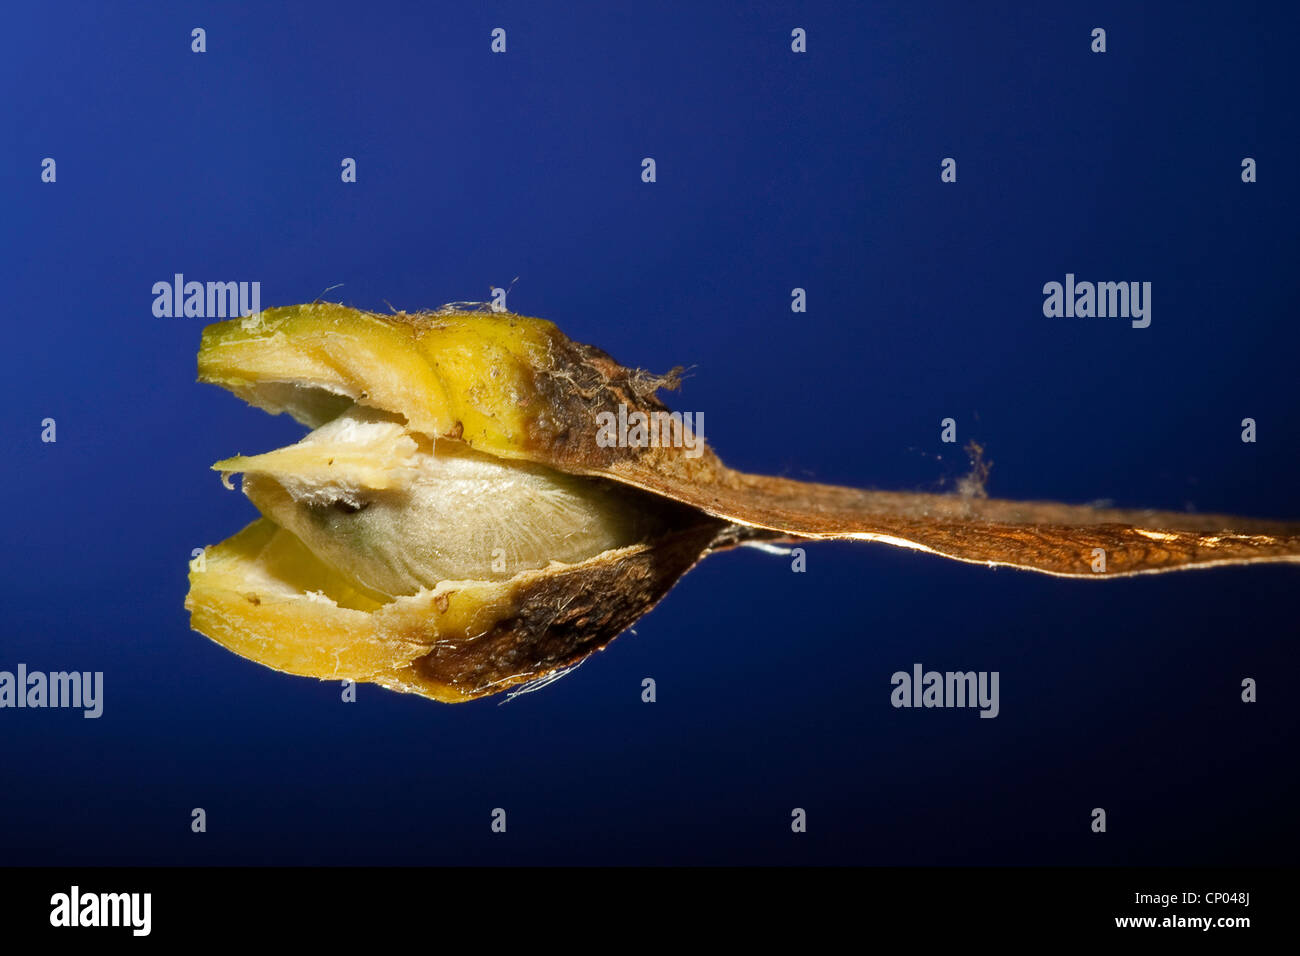 sycamore maple, great maple (Acer pseudoplatanus), fruit of maple tree, opened to have a look on a seed, Germany Stock Photo